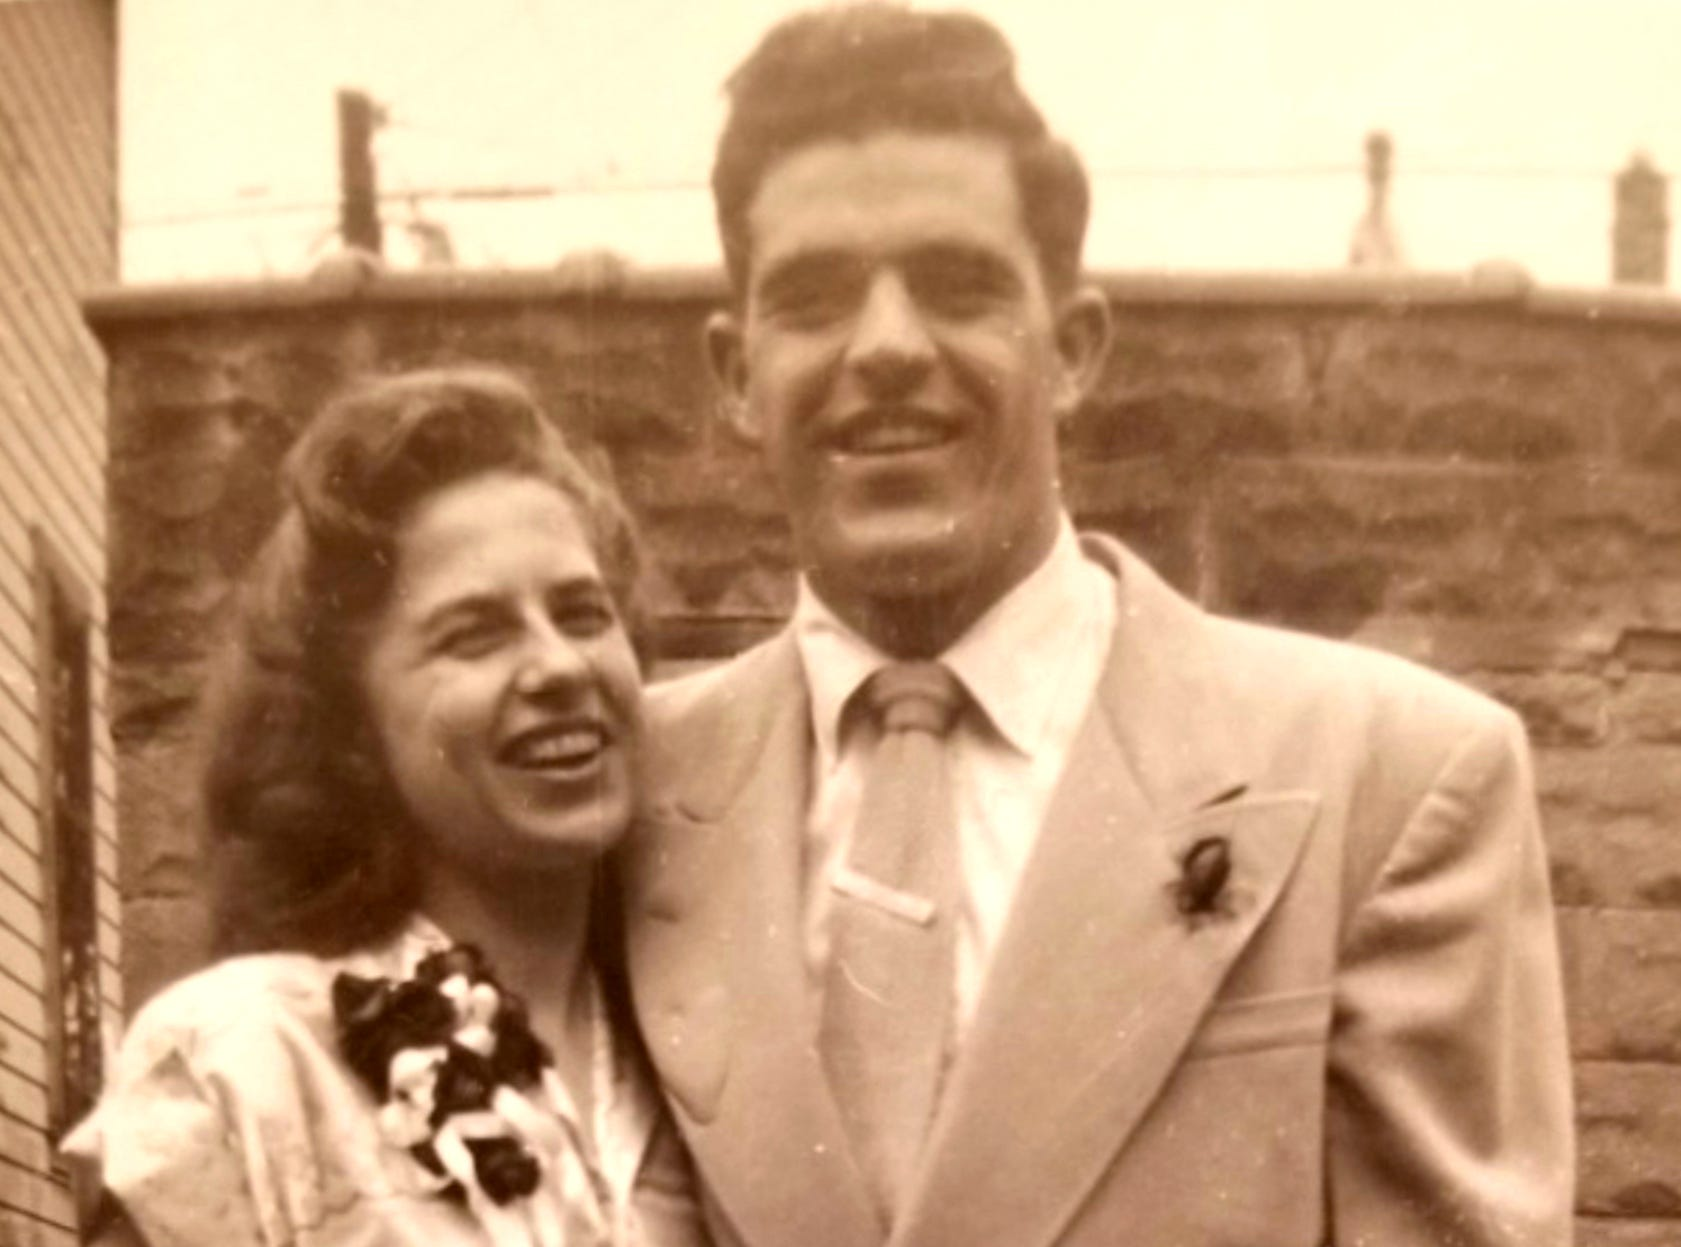 Undated photo of Bob Paquette and his wife, Ruth. They were married in 1950.